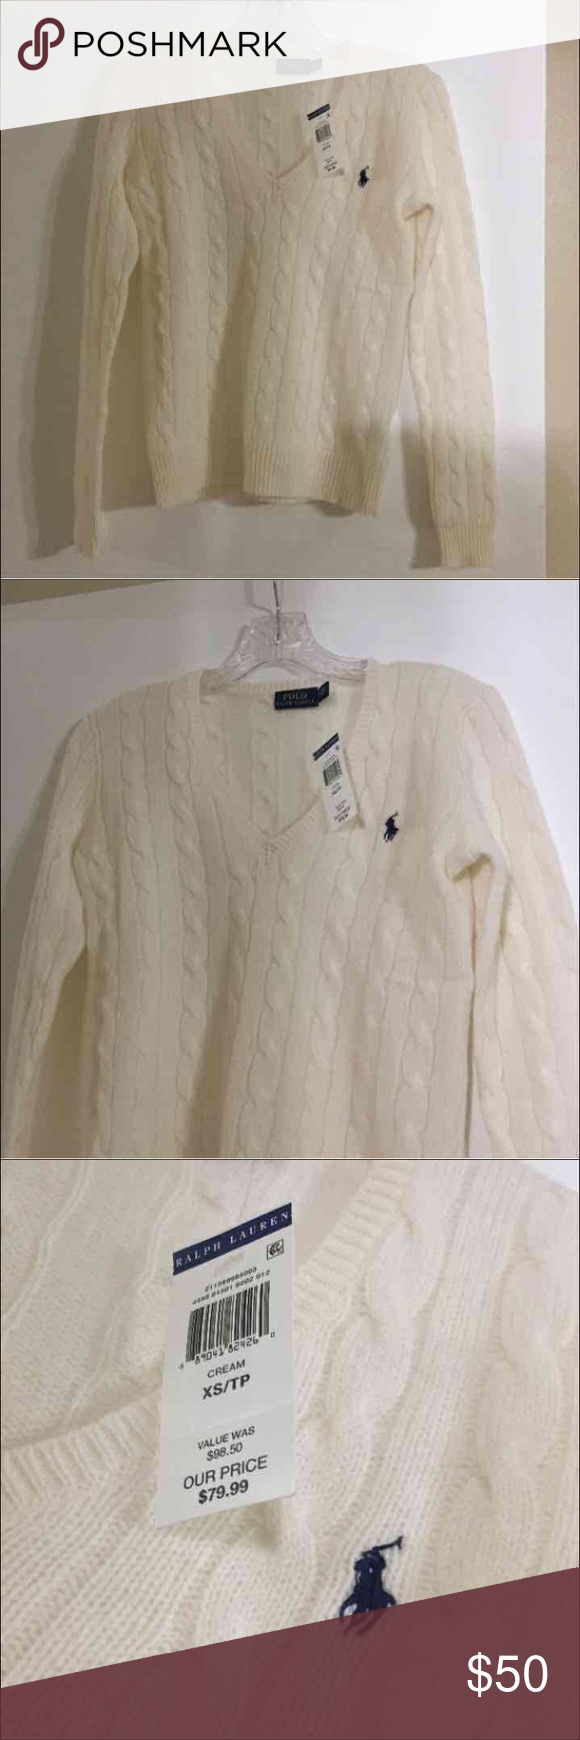 Brand new polo sweater new with tags perfect for a Christmas present Polo by Ralph Lauren Sweaters V-Necks